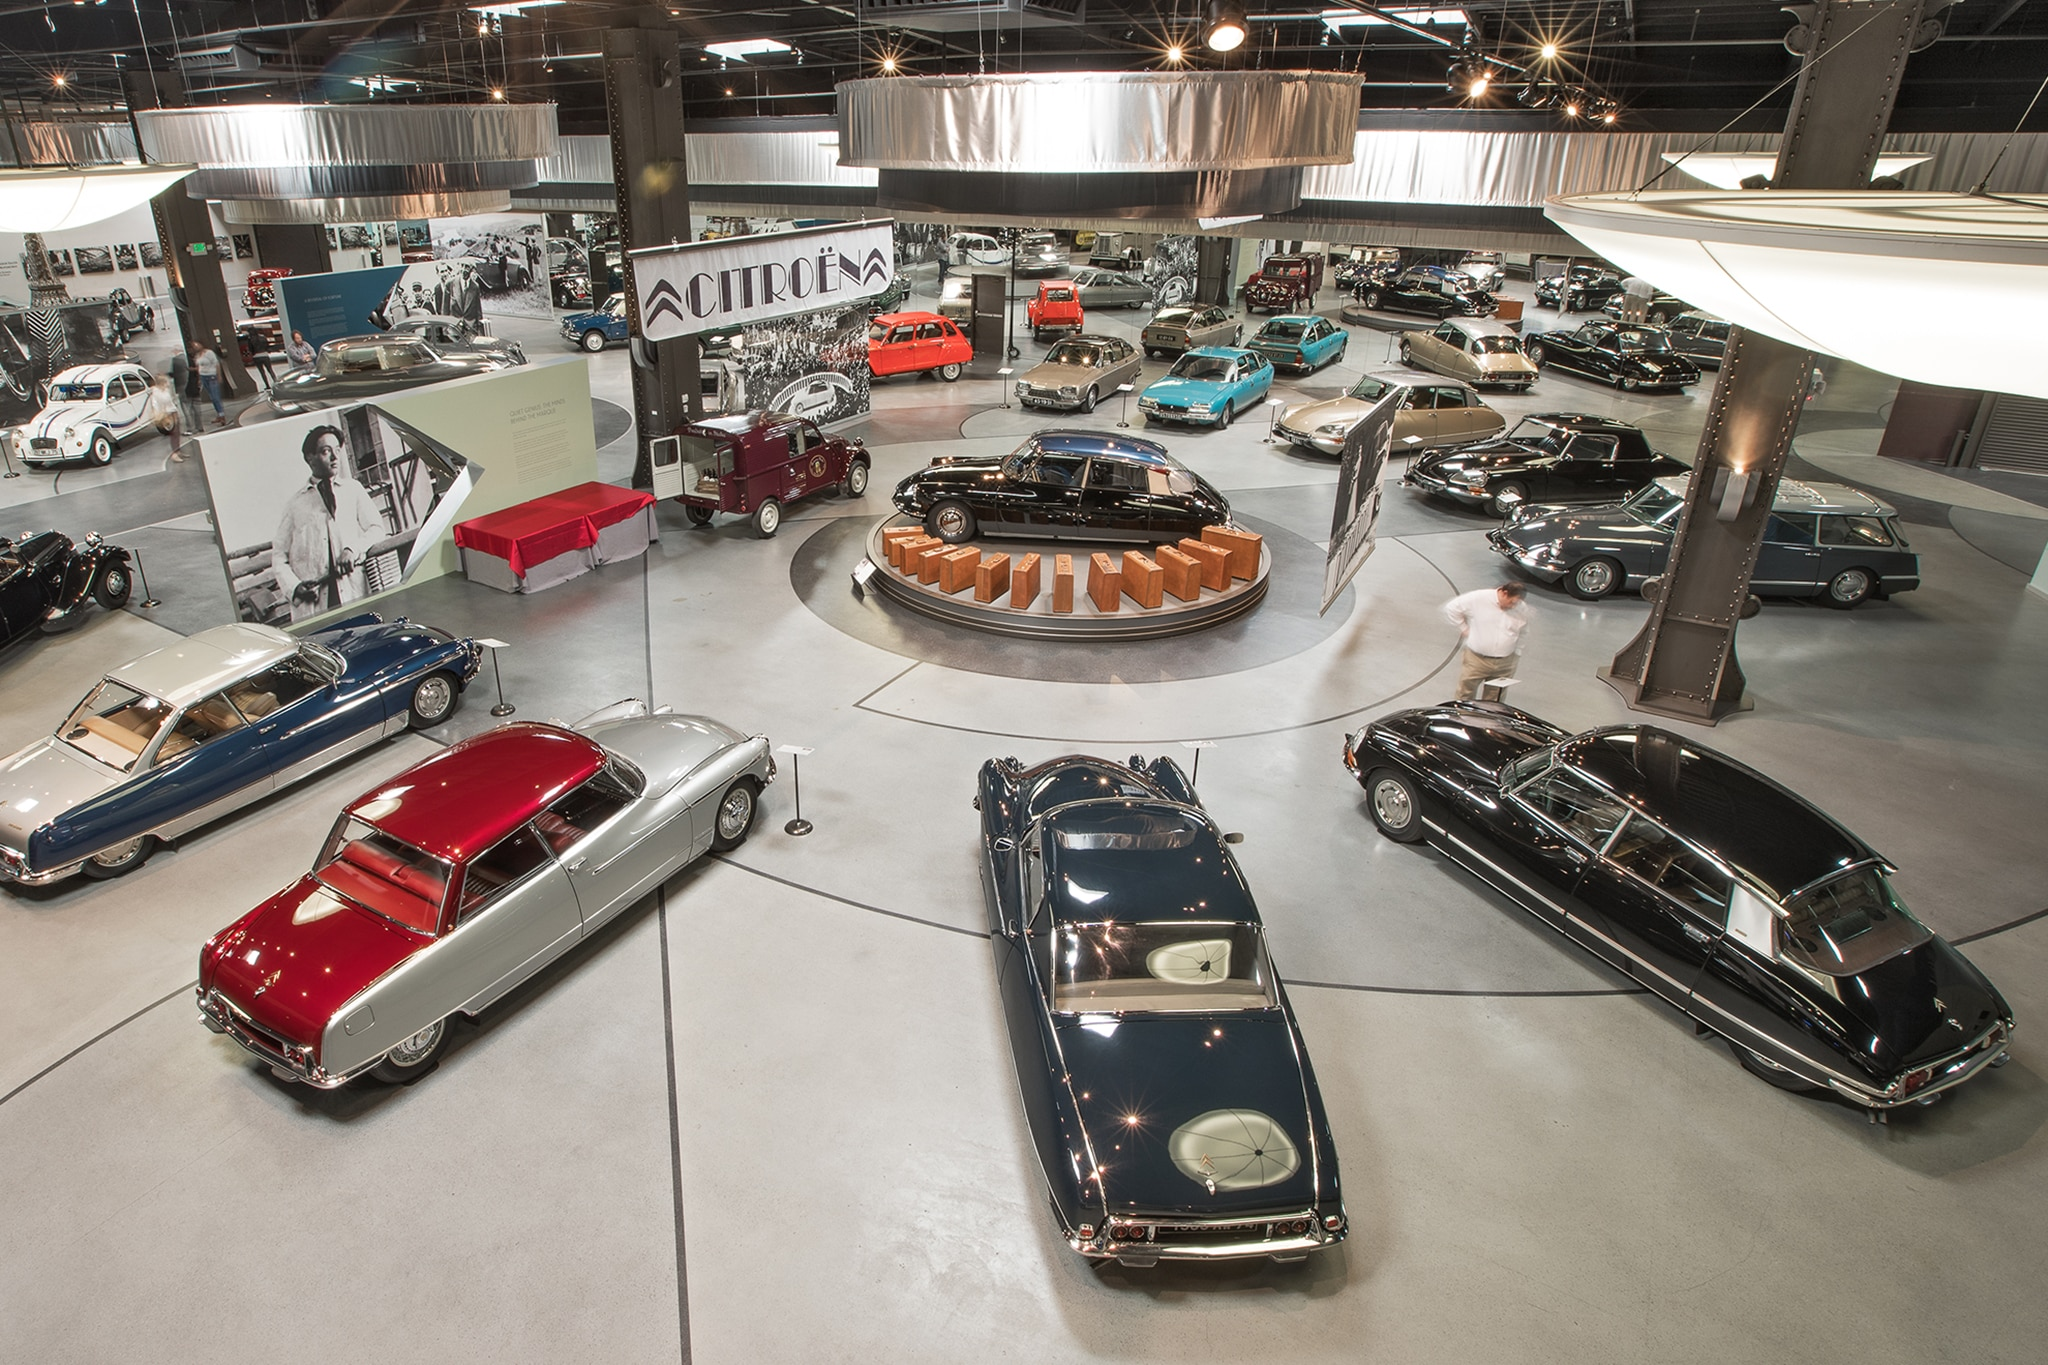 Citroen Exhibit At The Mullin Automotive Museum 41